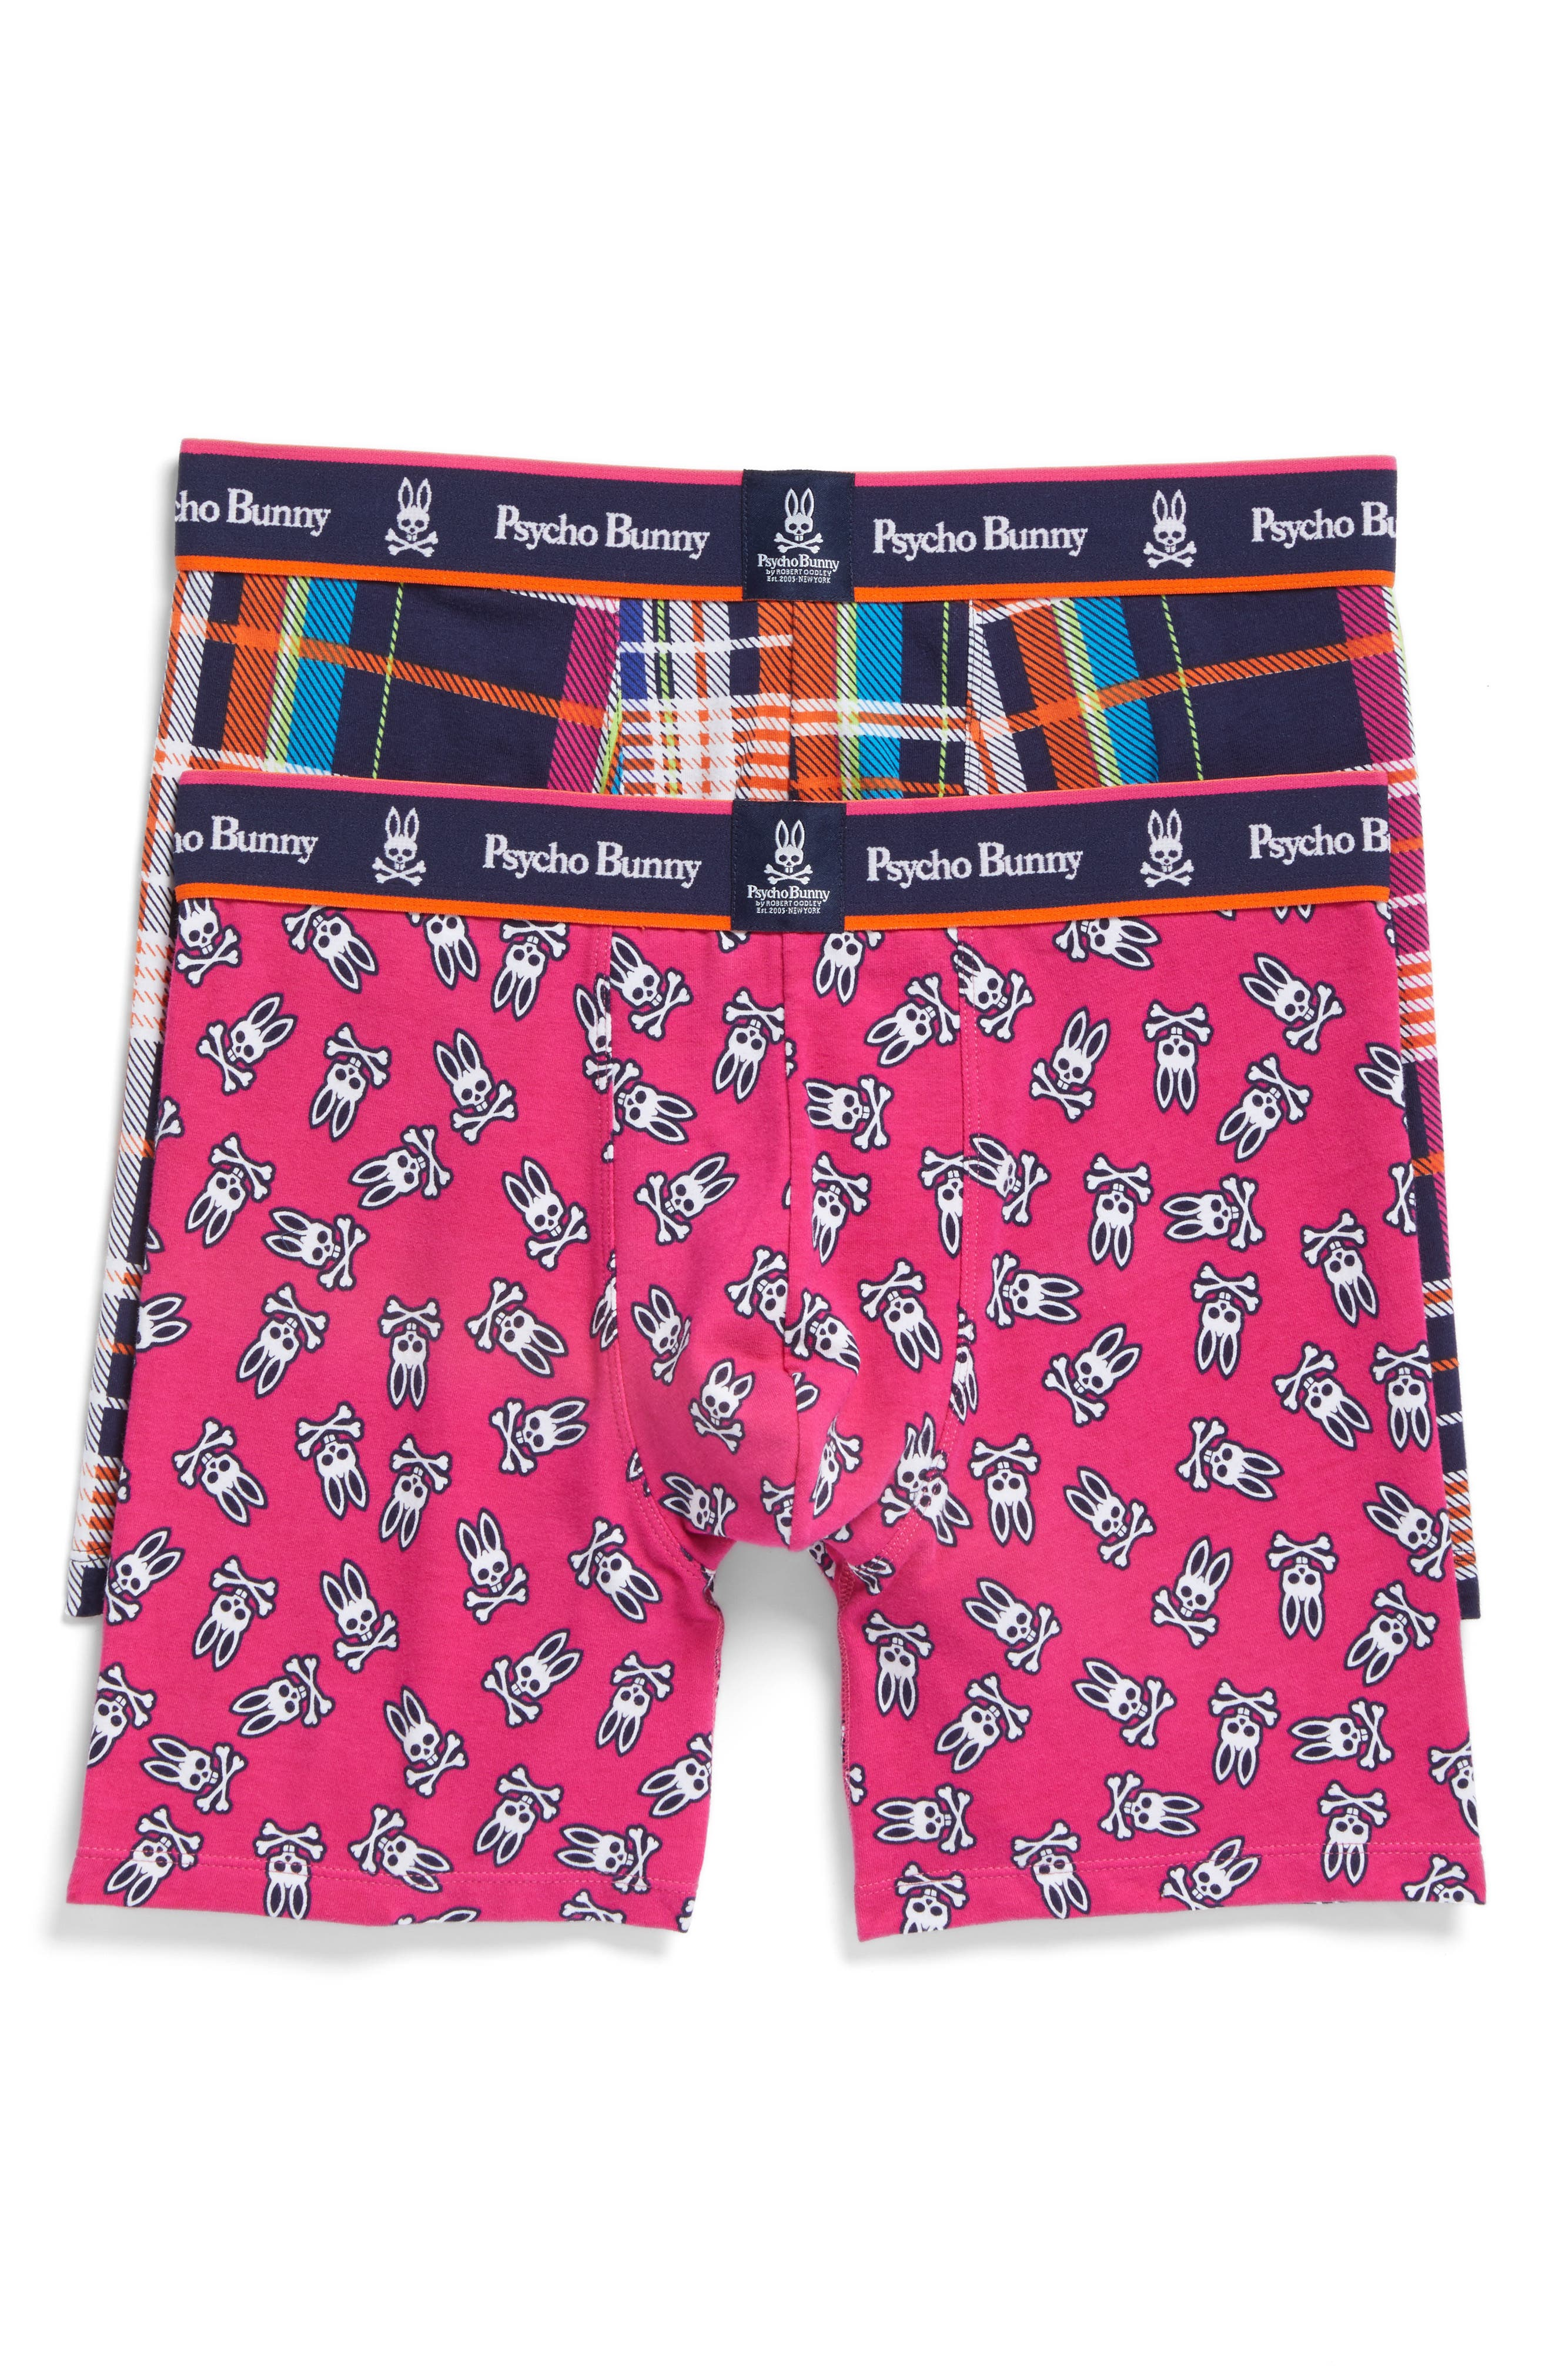 2-Pack Boxer Briefs,                         Main,                         color, Bouy Plaid/ Bouy Tossed Bunny